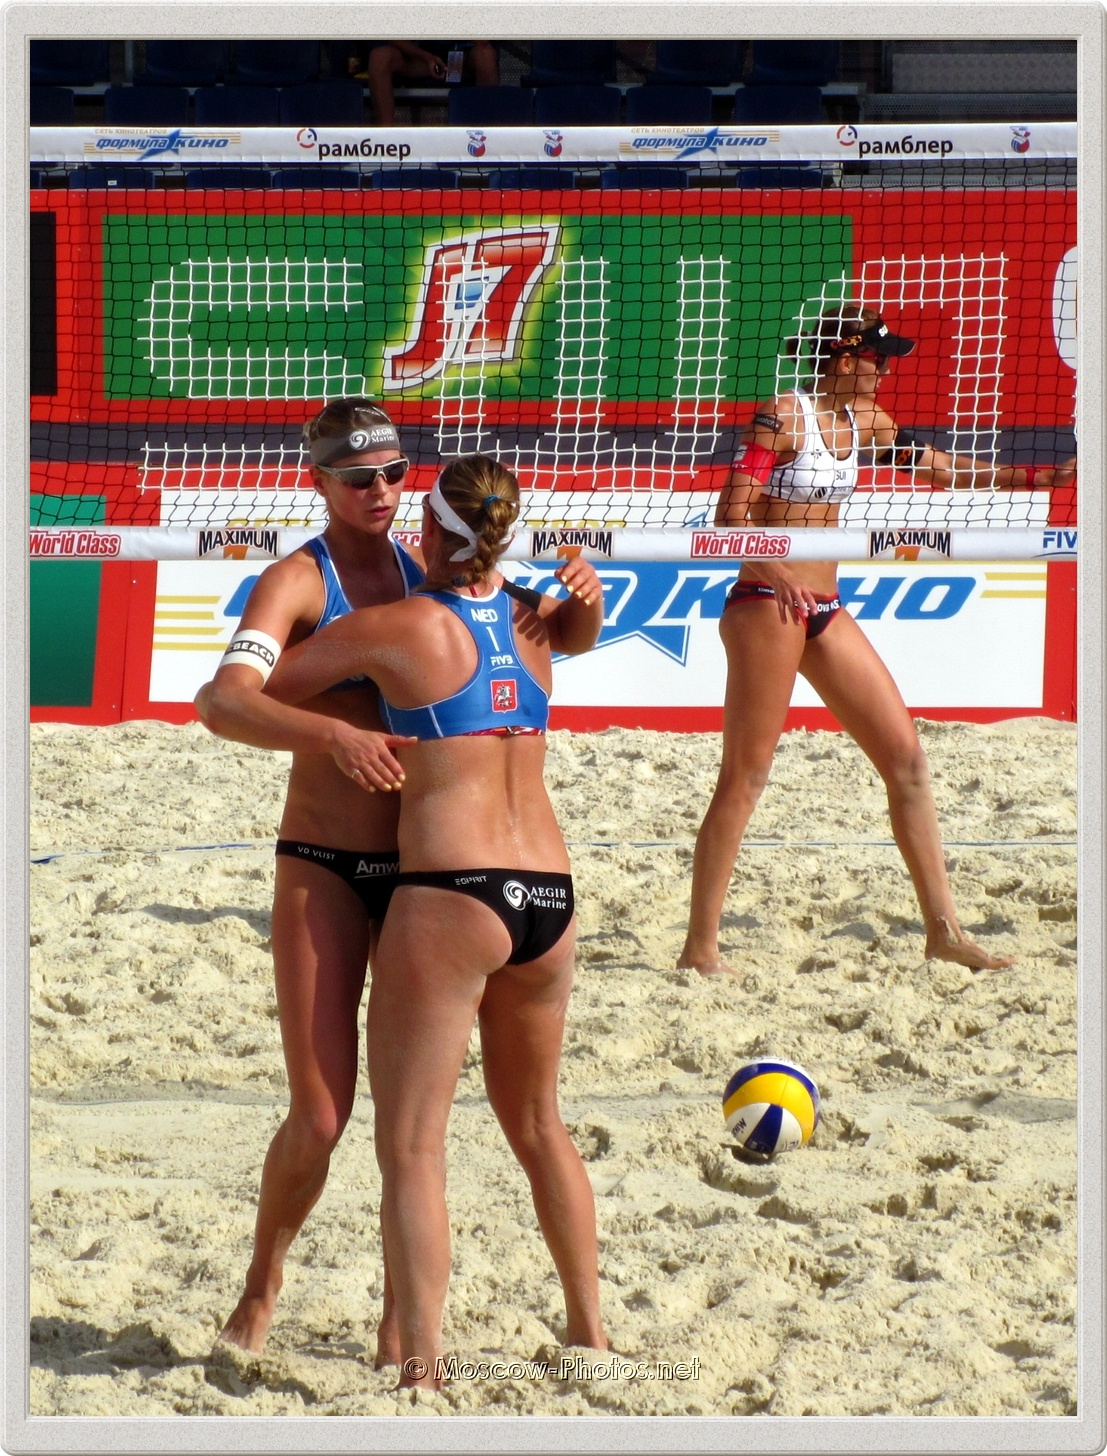 The Netherland Beach Volley Women's Team